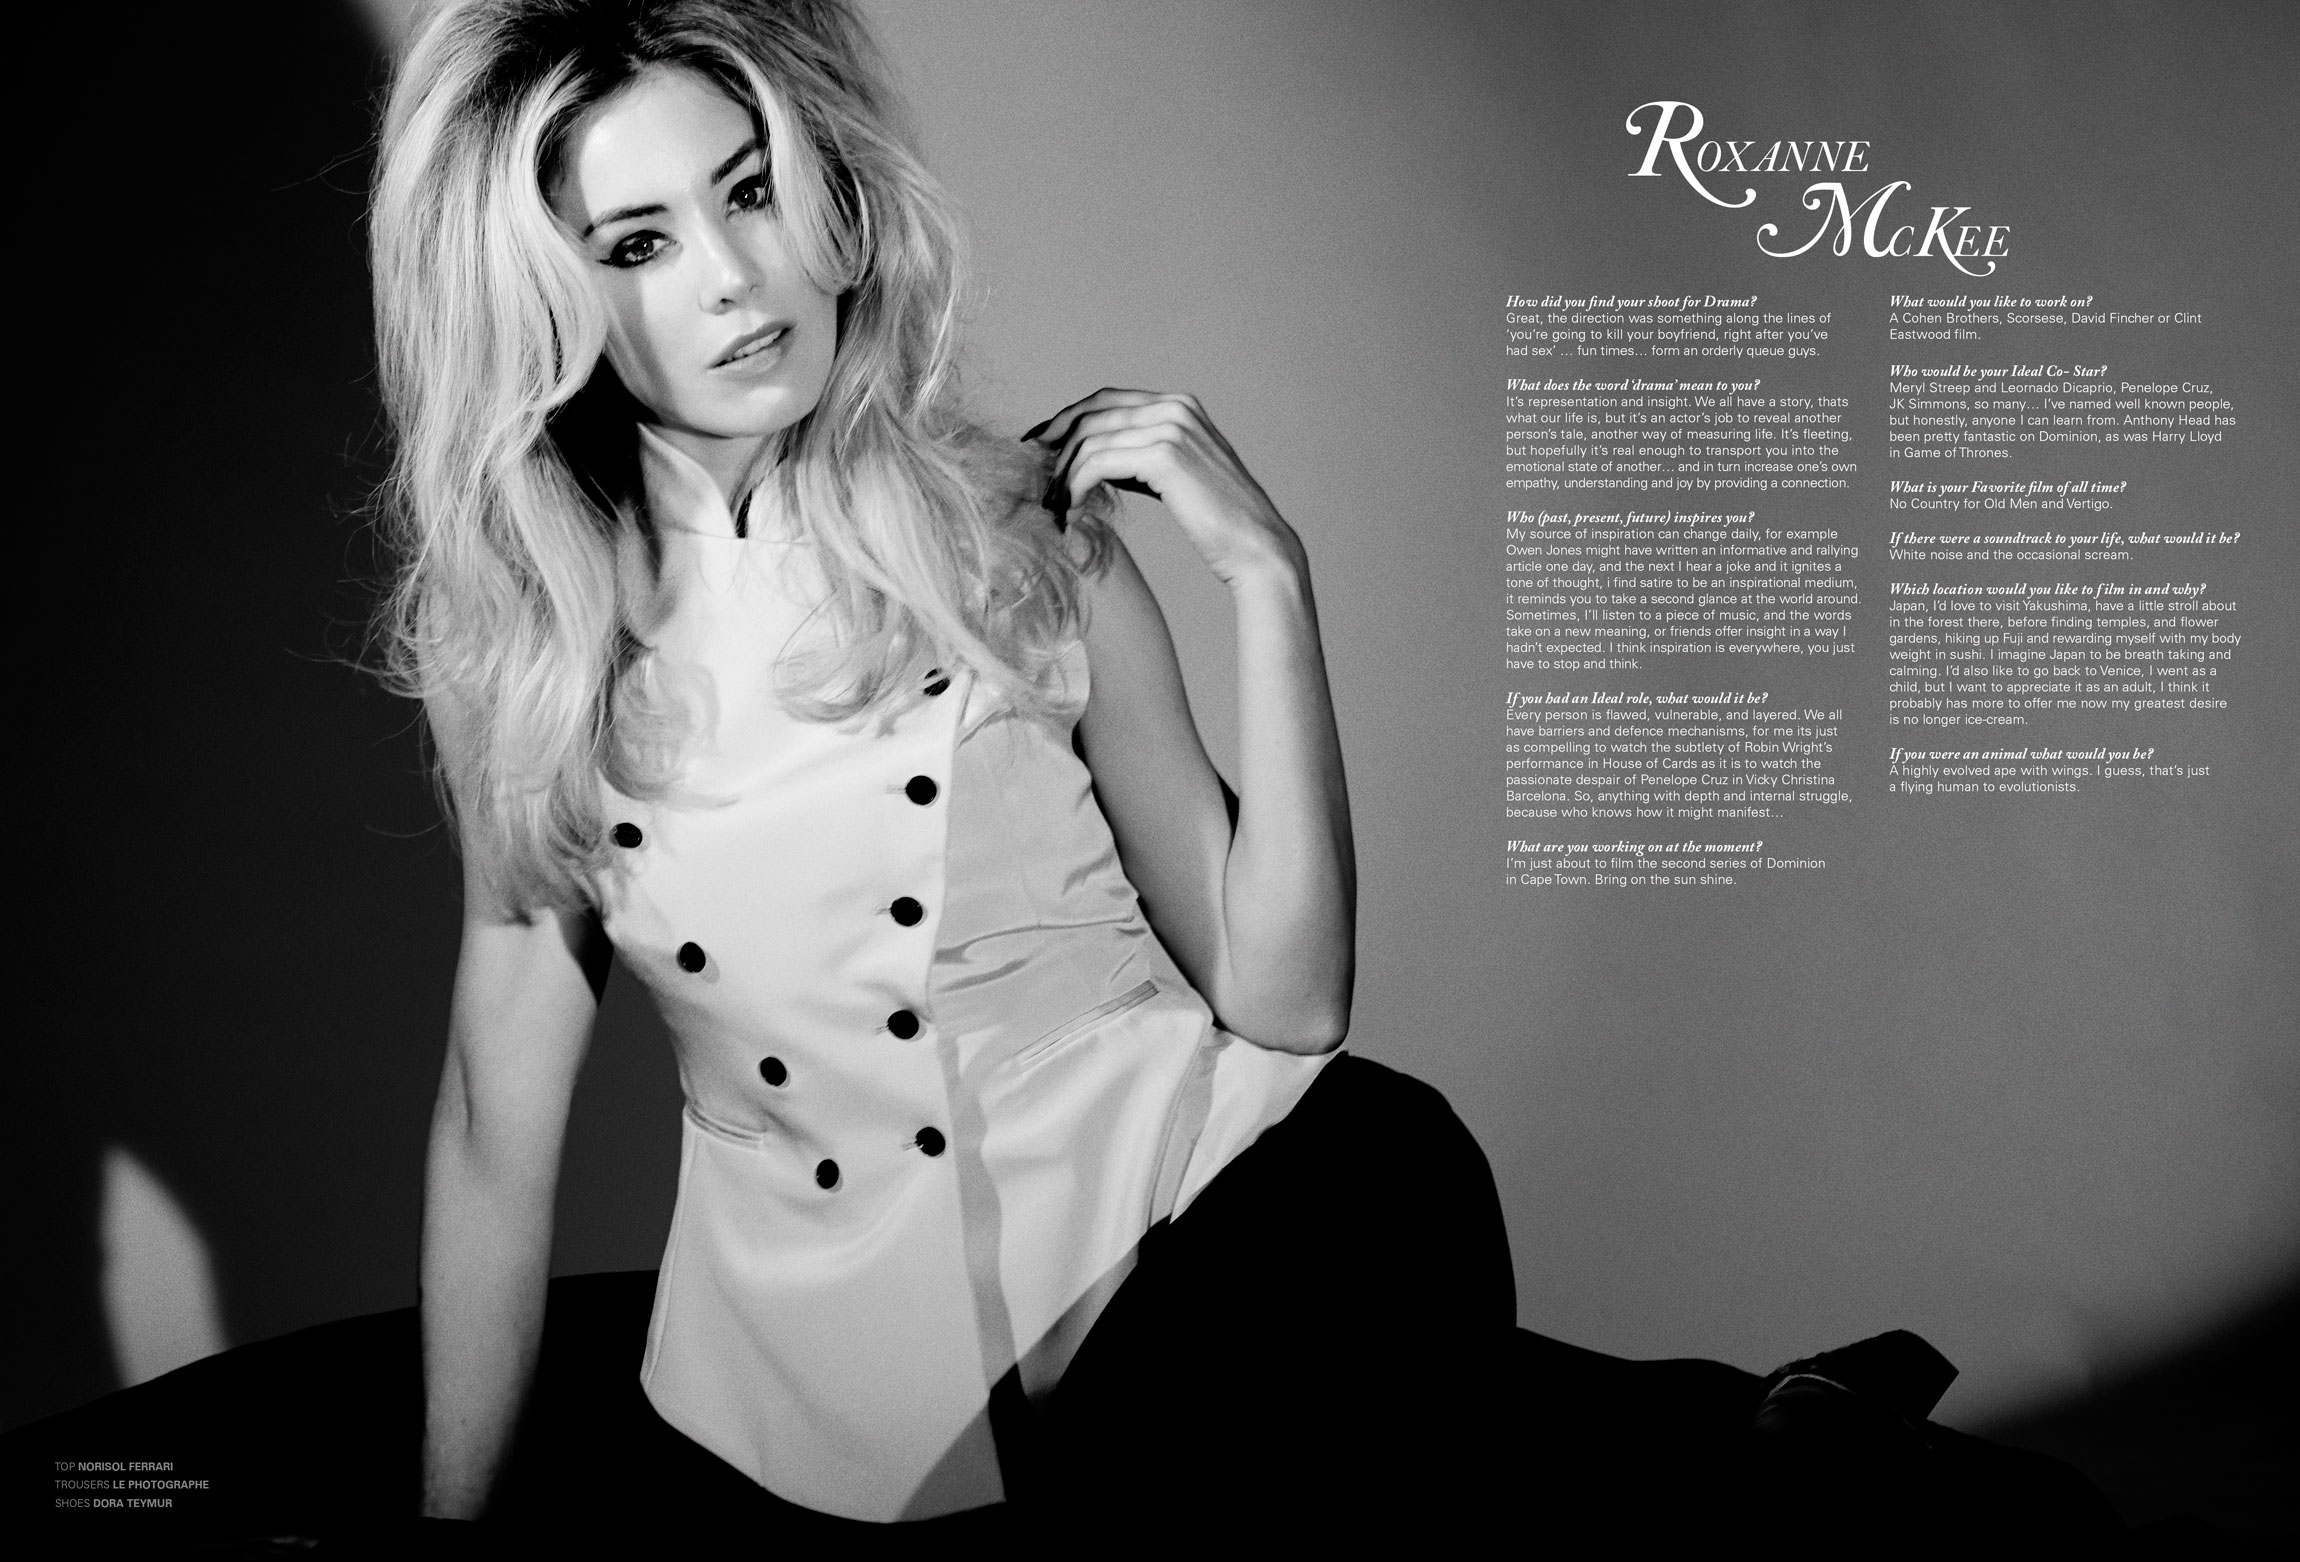 Roxanne Mckee Widescreen for desktop